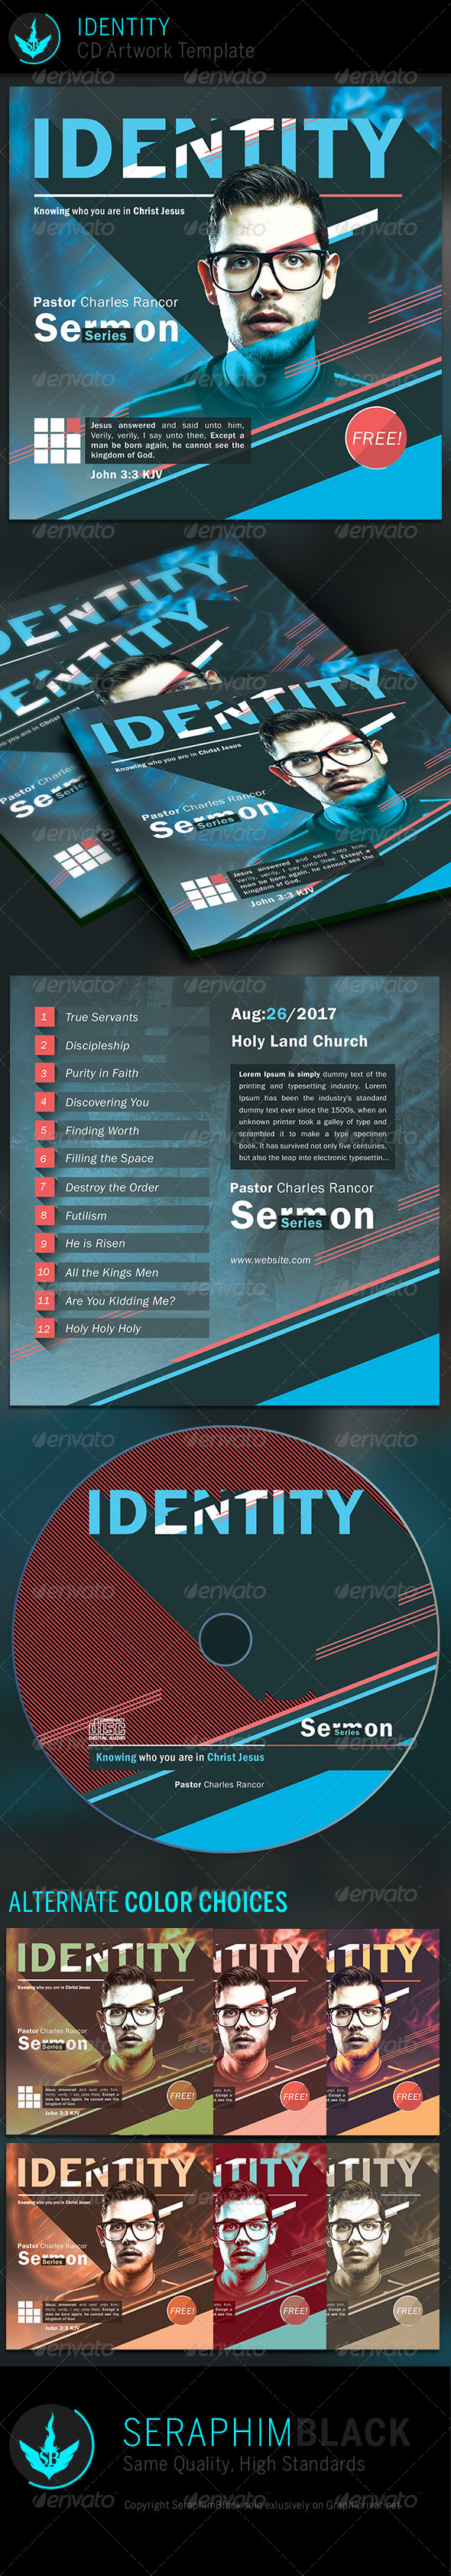 GraphicRiver Identity CD Artwork Template 6815676